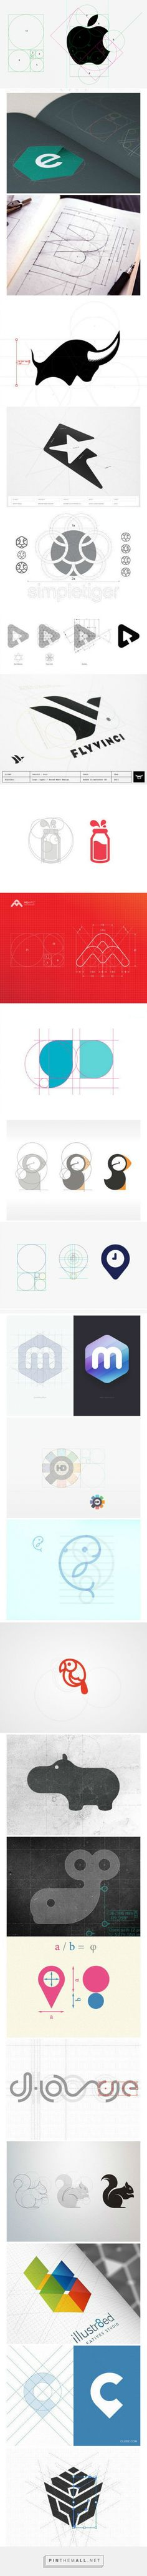 Grids in logos